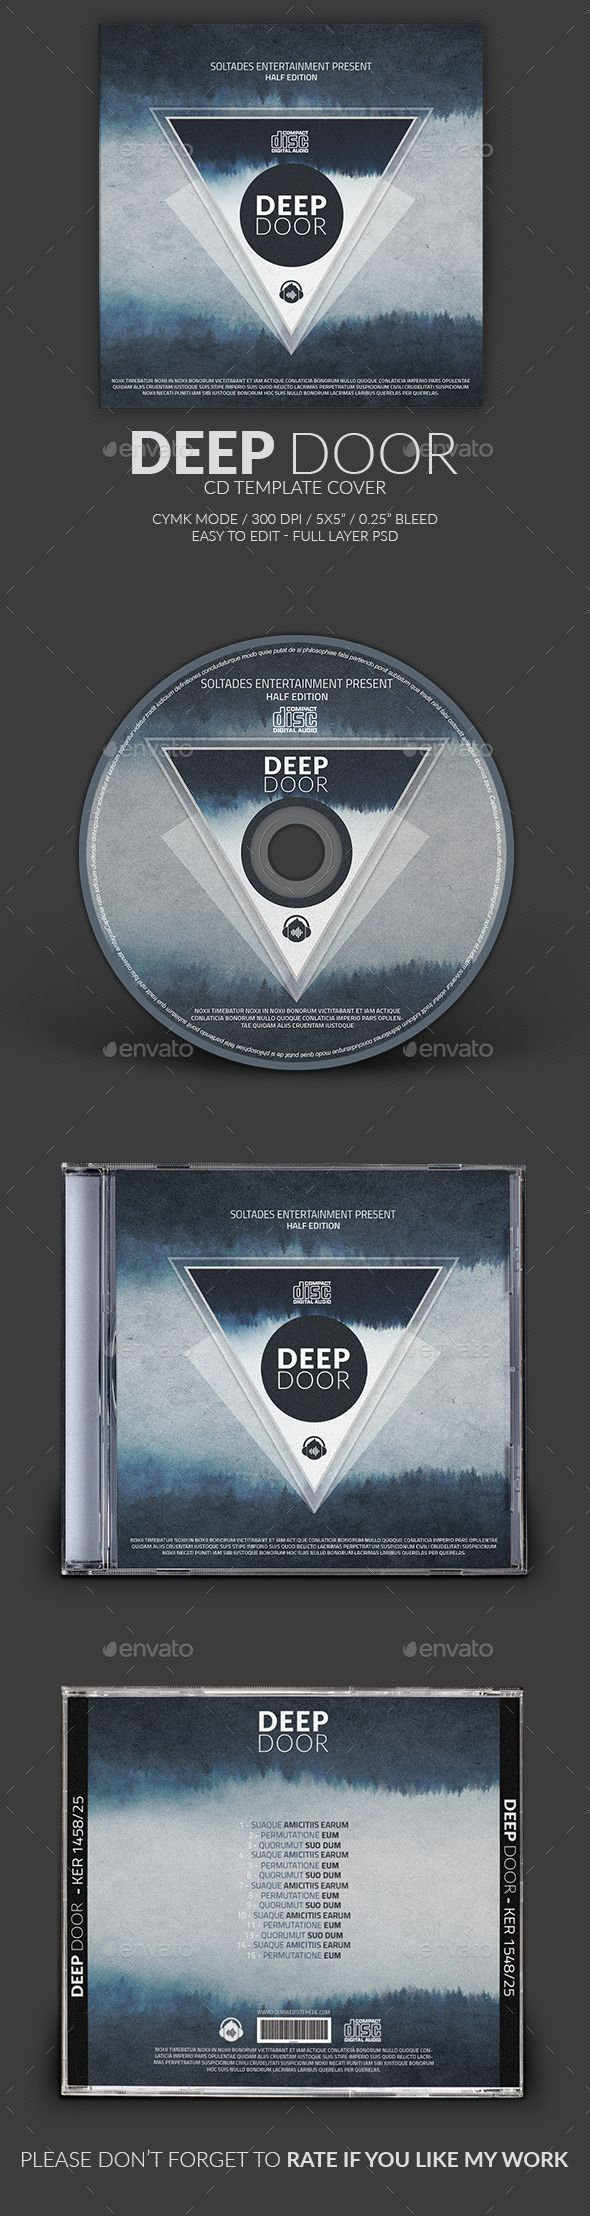 Deep Door CD Cover Template — Photoshop PSD #modern #futuristic • Available here → https://graphicriver.net/item/deep-door-cd-cover-template/11725486?ref=pxcr